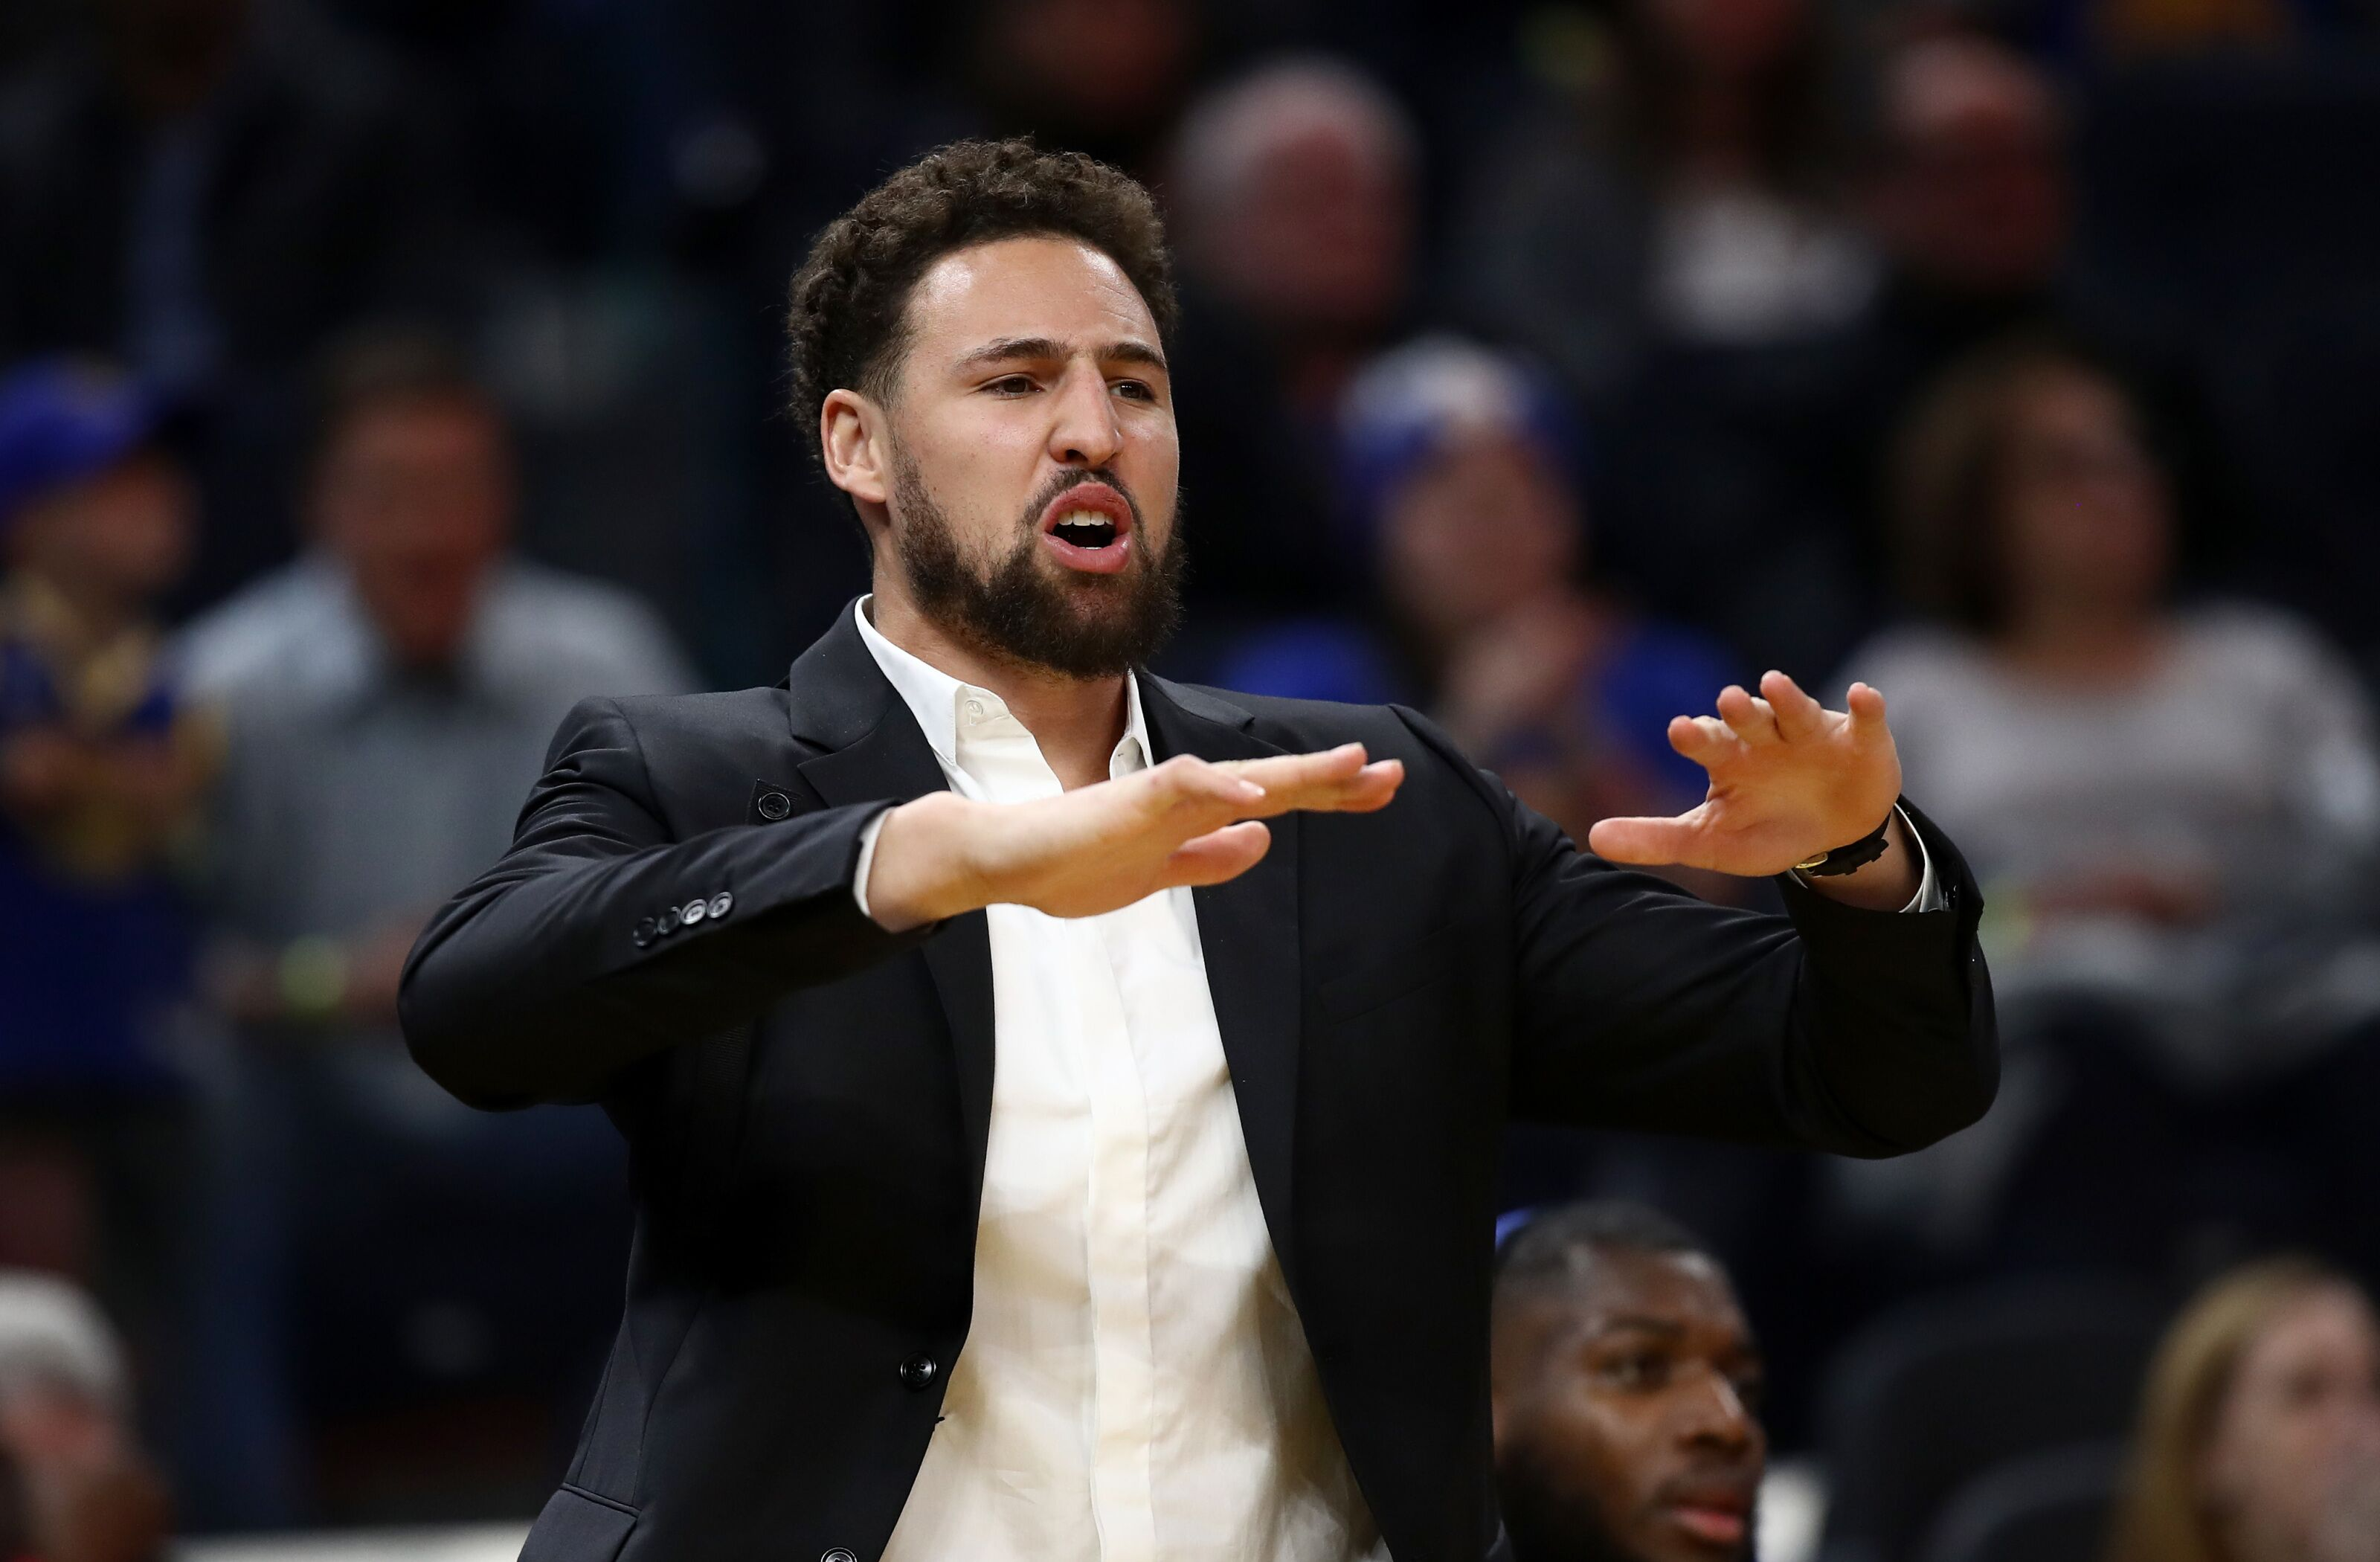 Warriors: Klay Thompson's return to court fuels speculation